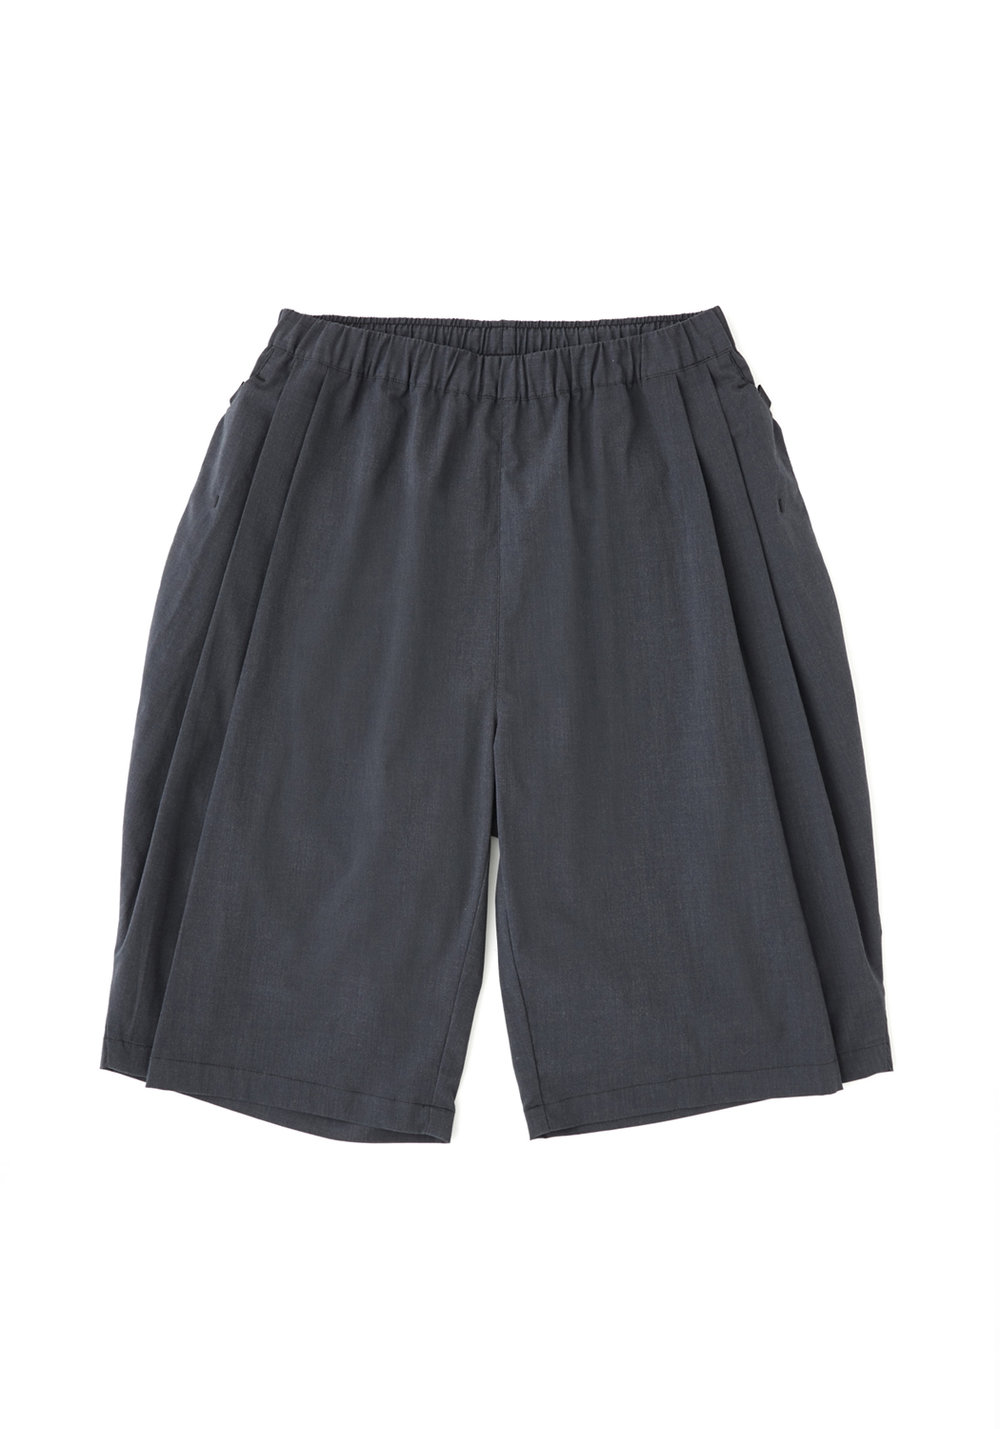 alk phenix Crank Hakama shorts made of a lightweight kevlar fabric. Available via  alk phenix